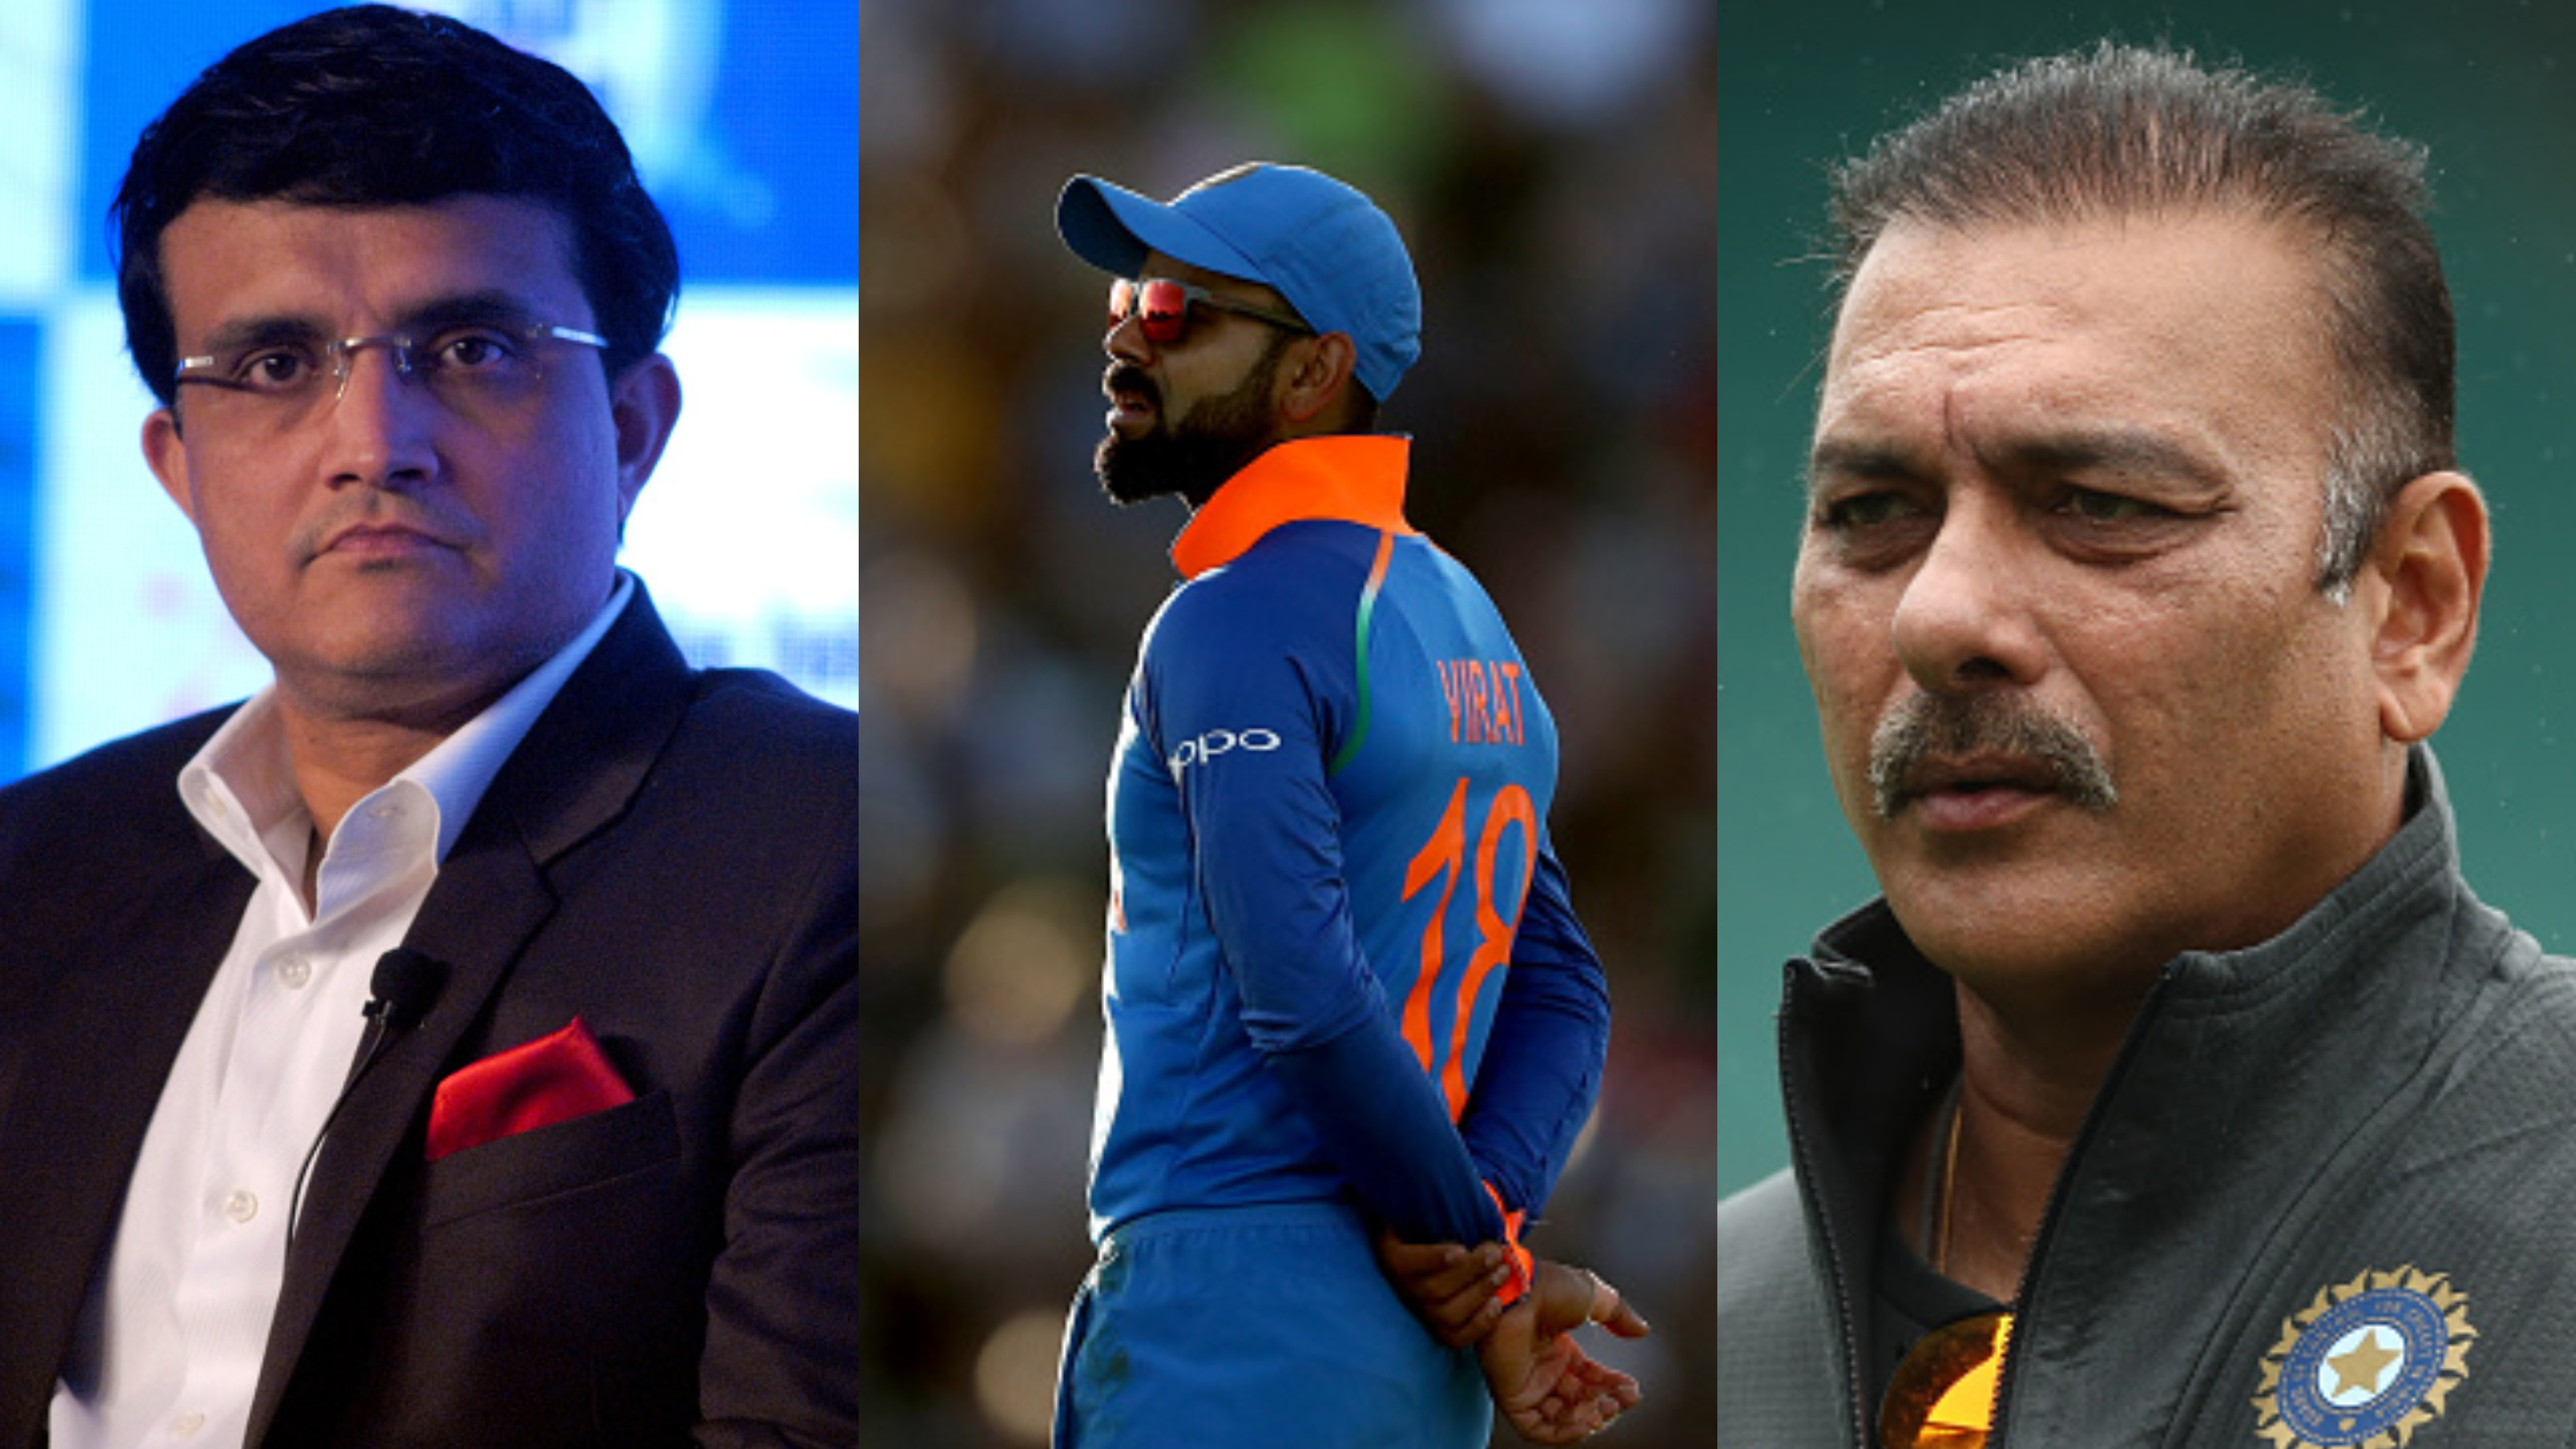 CWC 2019: Sourav Ganguly reacts to Ravi Shastri's idea of playing Virat Kohli at No. 4 in the World Cup